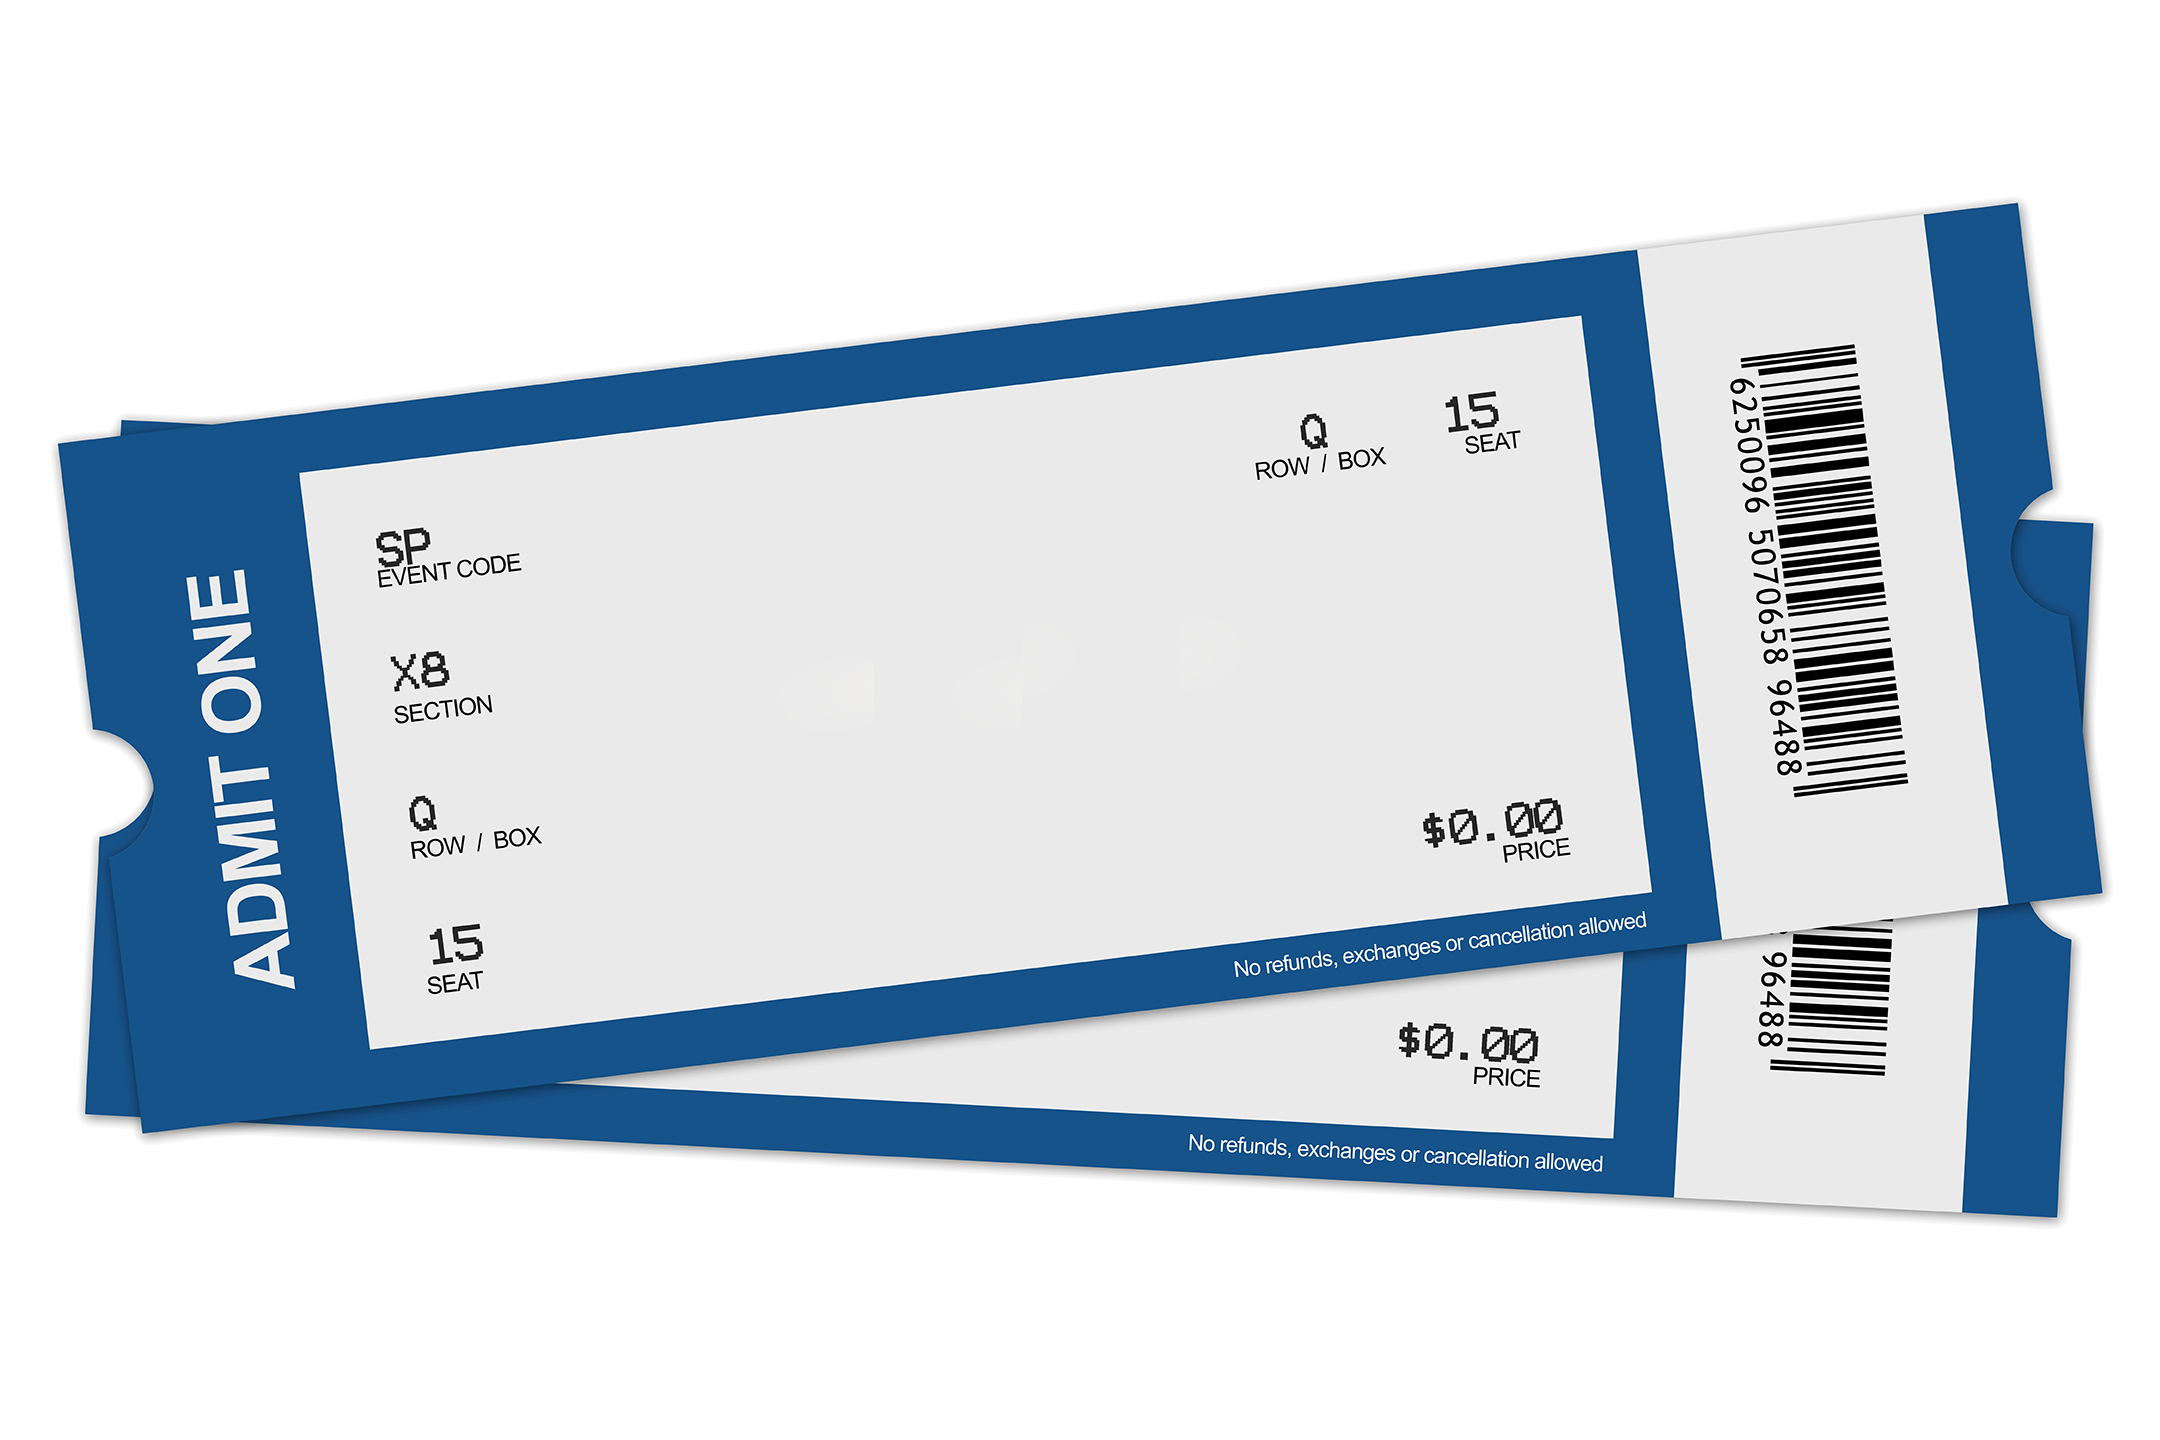 Blank ticket clipart vector royalty free stock Blank Ticket Clipart | Free download best Blank Ticket Clipart on ... vector royalty free stock